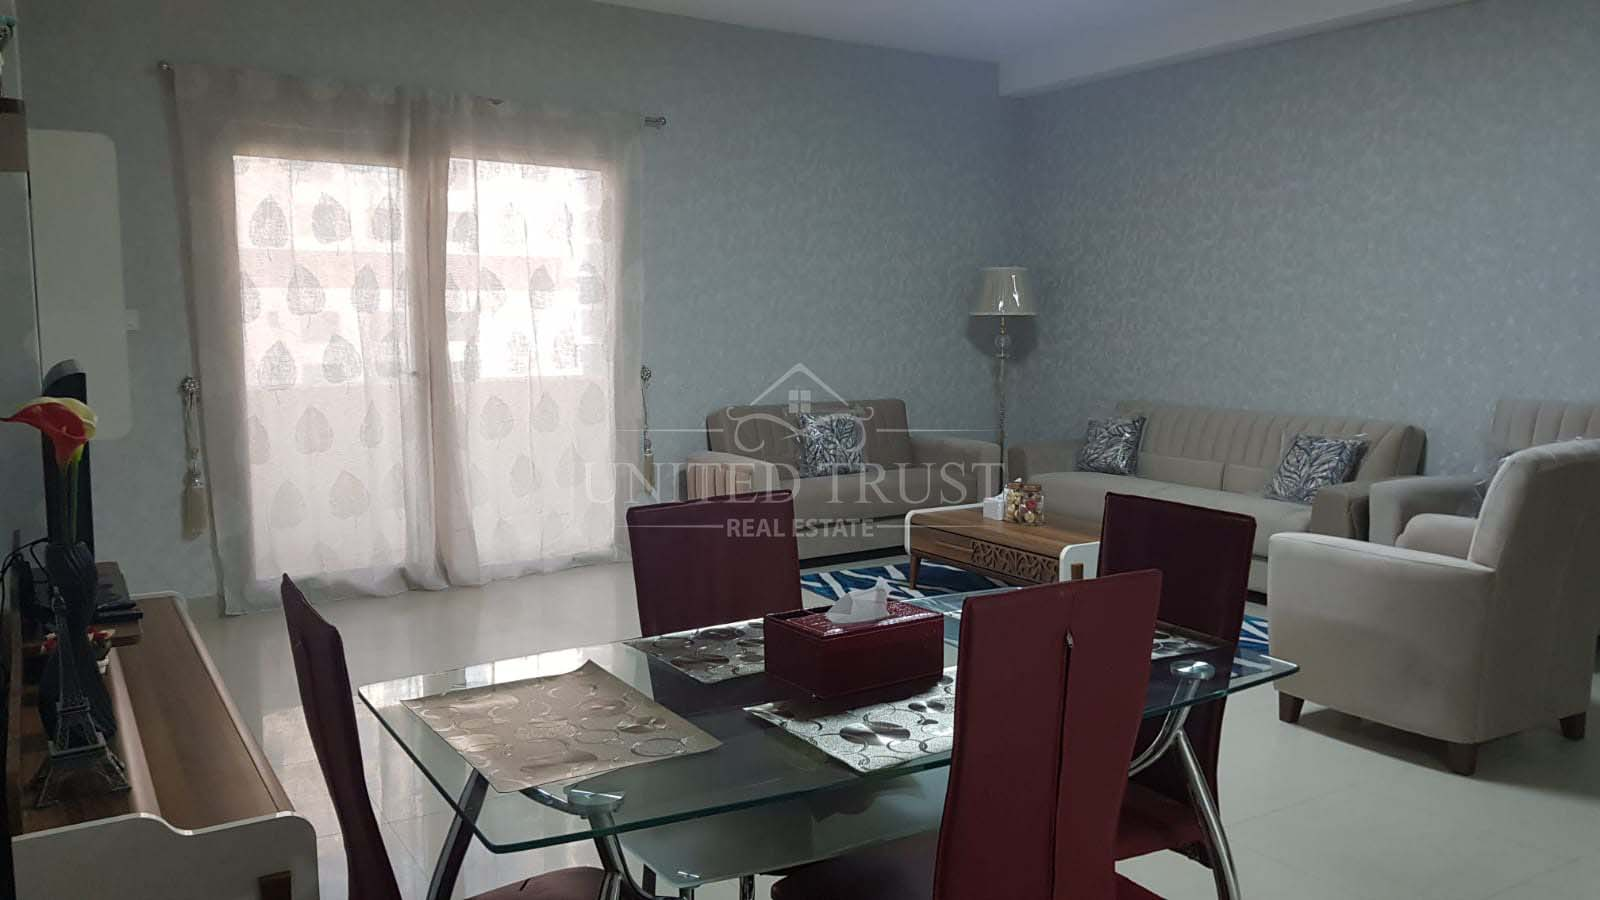 For sale residential apartment in juffair. Ref: JUF-MH-035